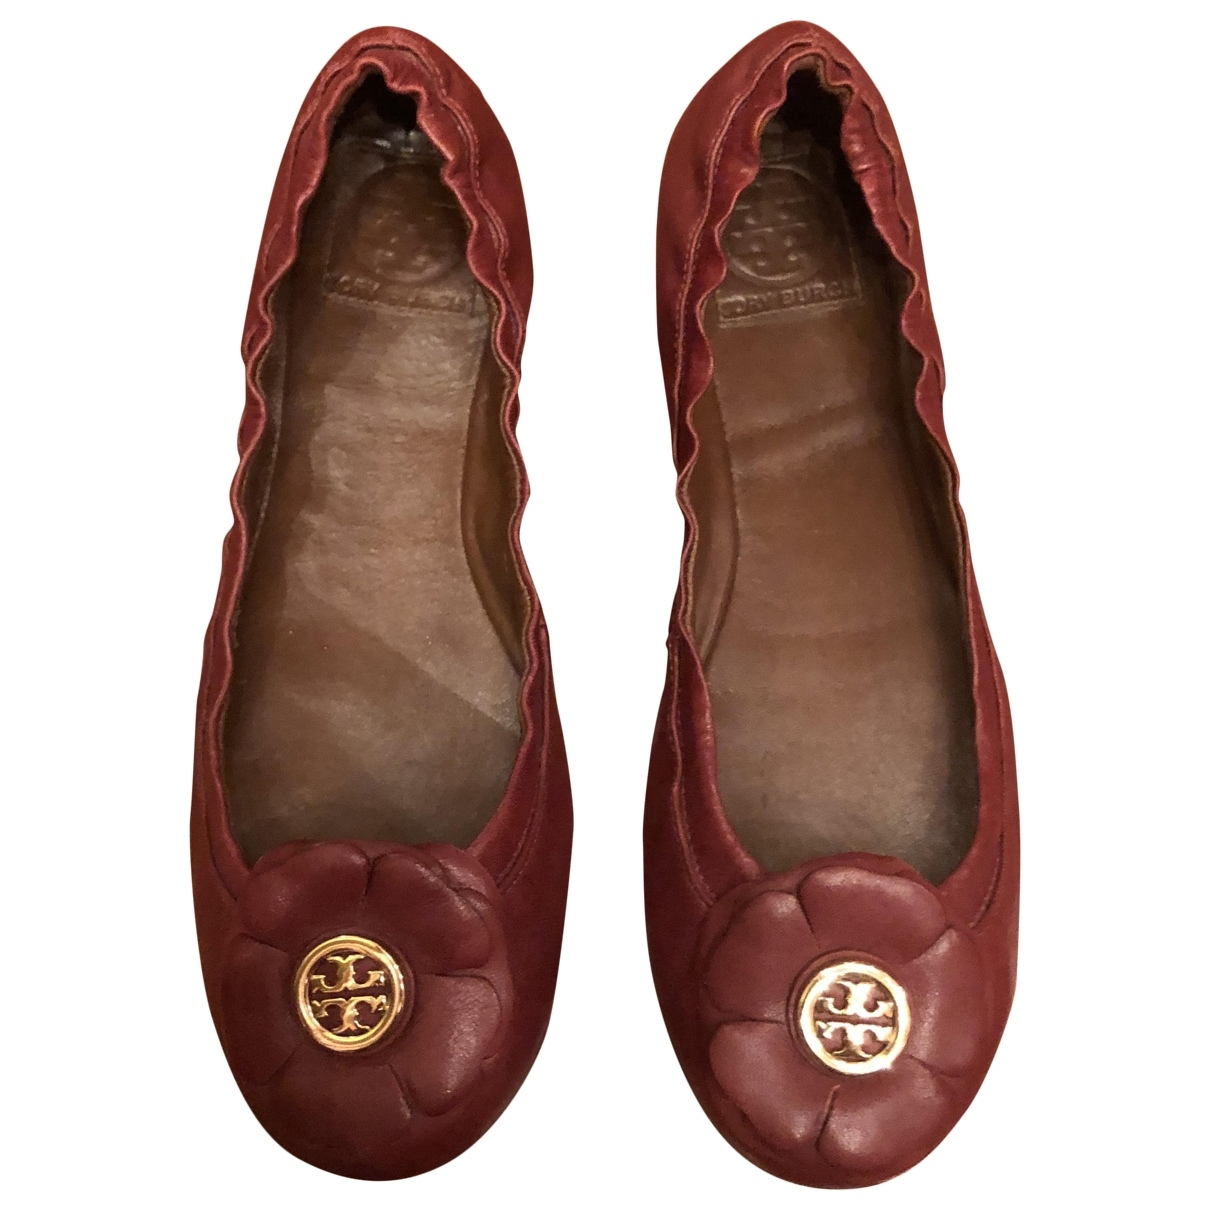 Tory Burch \N Burgundy Leather Ballet flats for Women 7.5 US